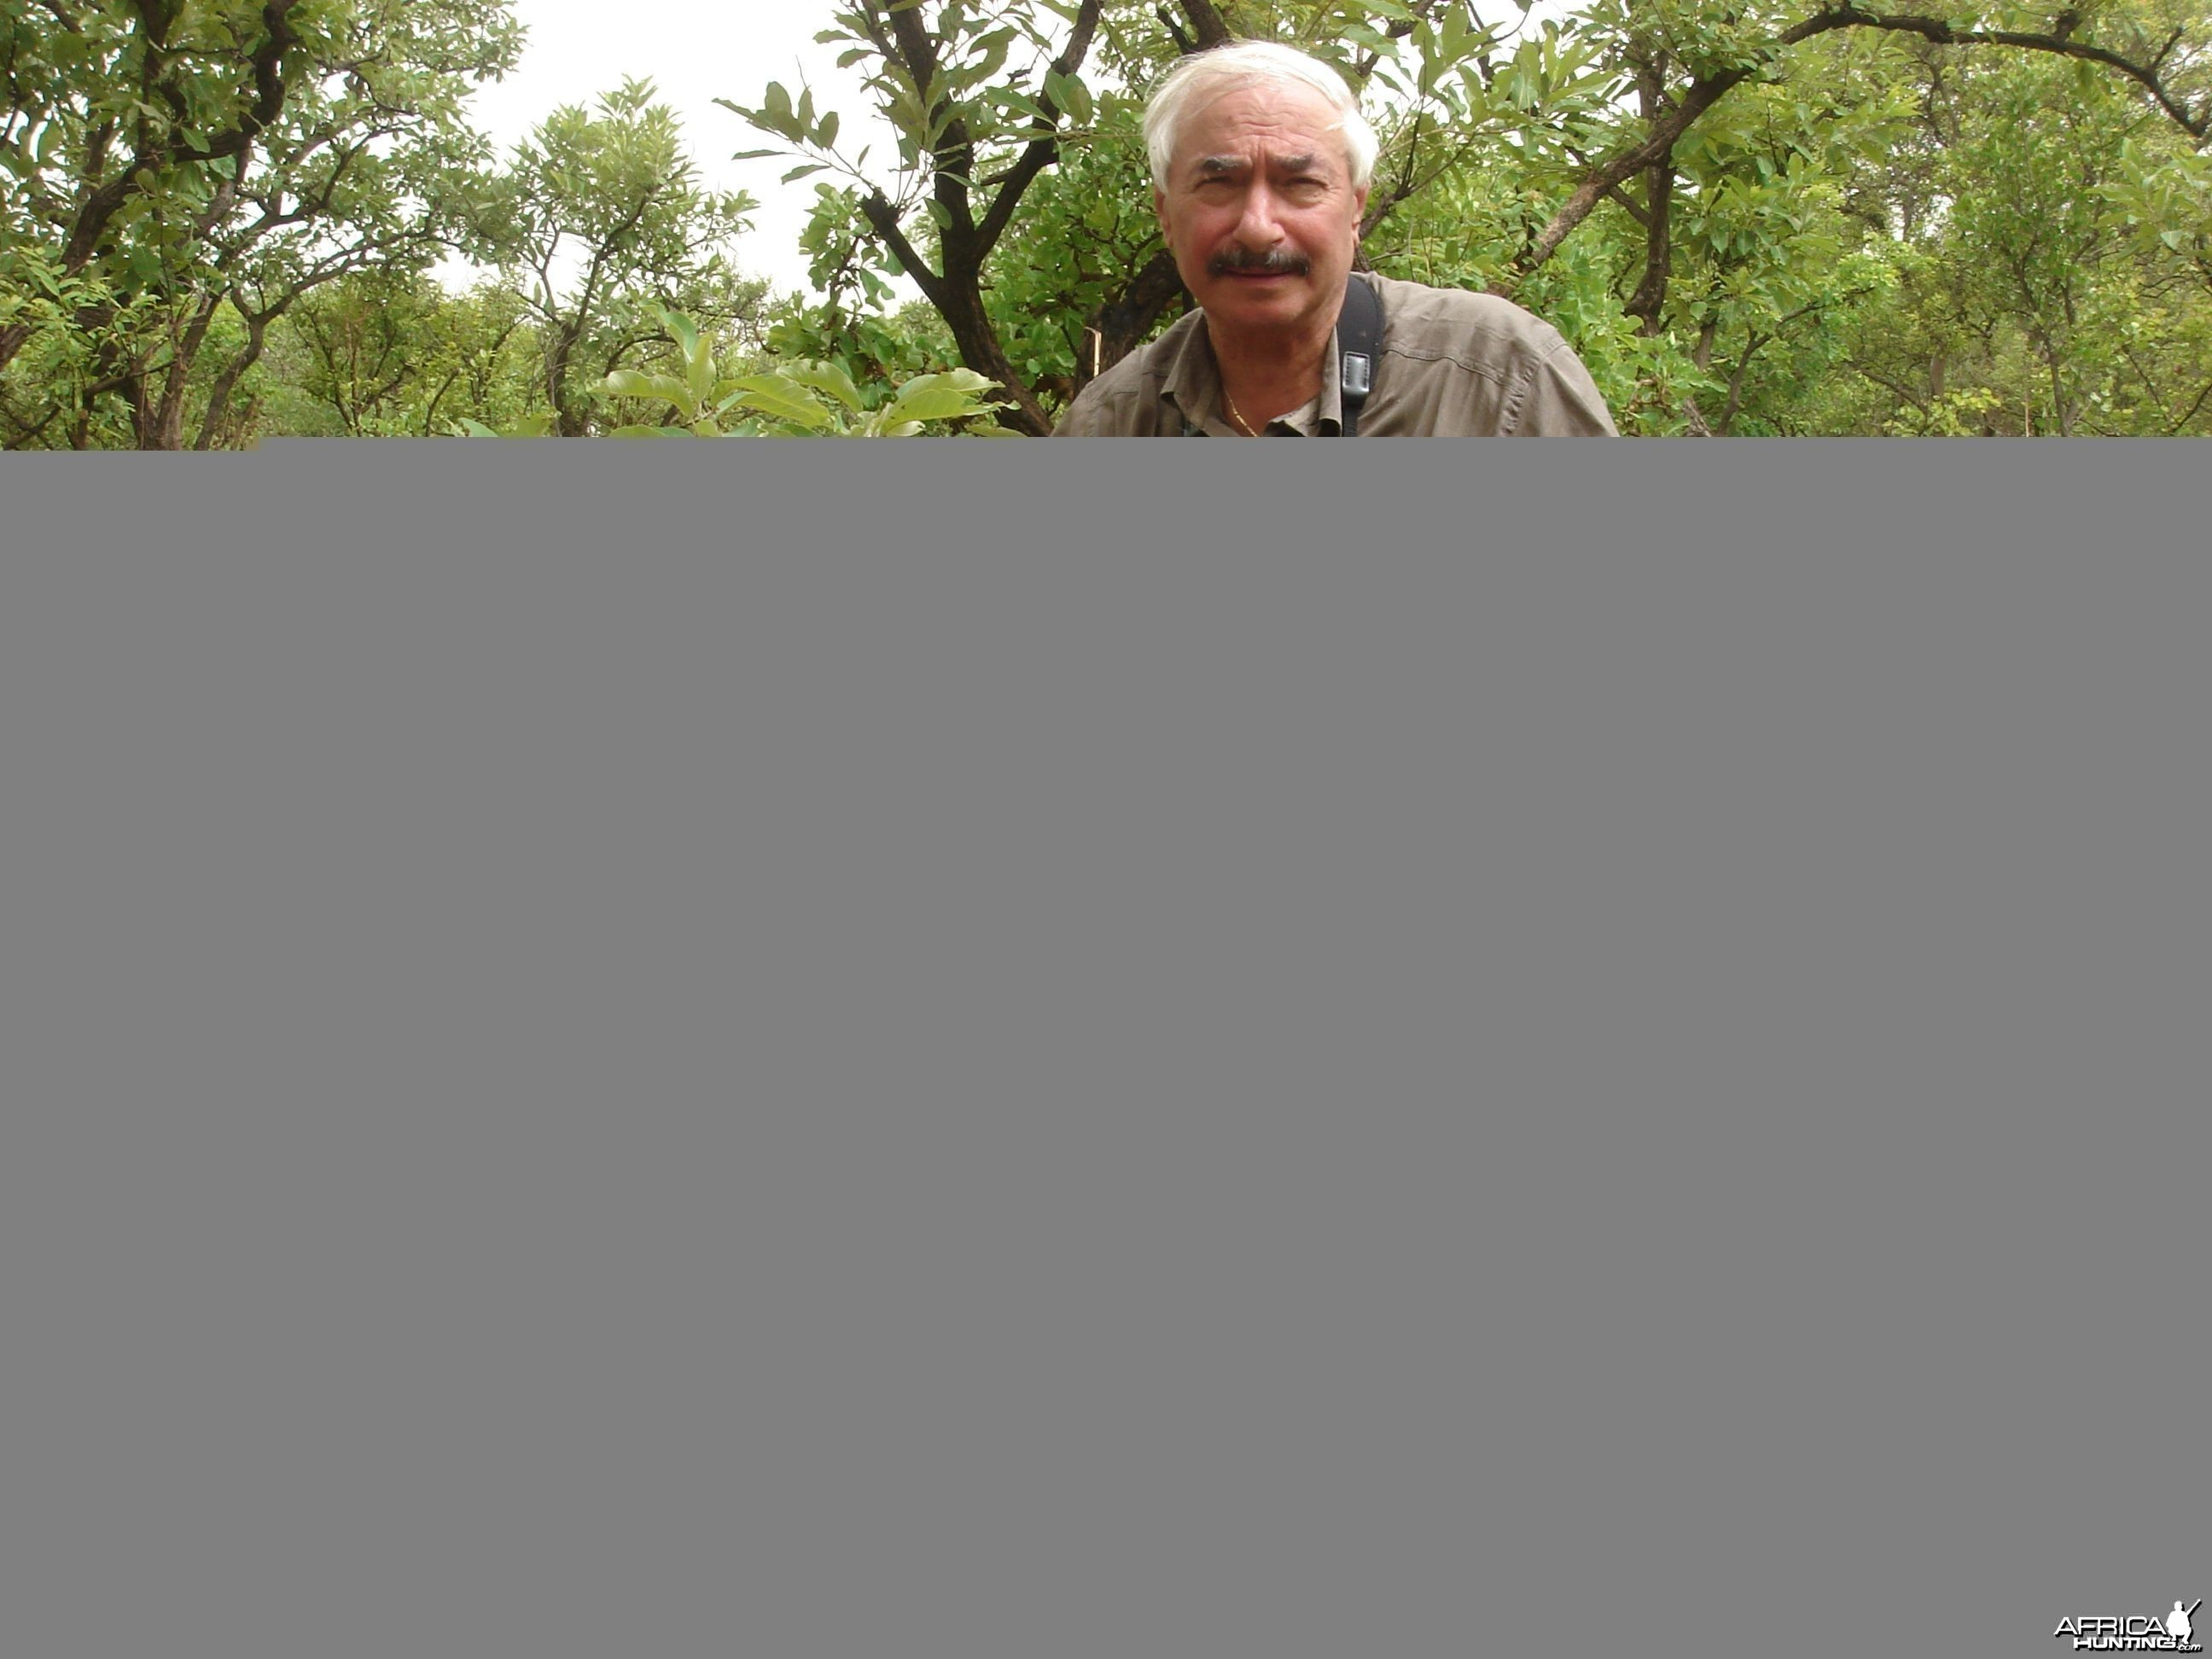 Warthog hunted in Central Africa with Club Faune